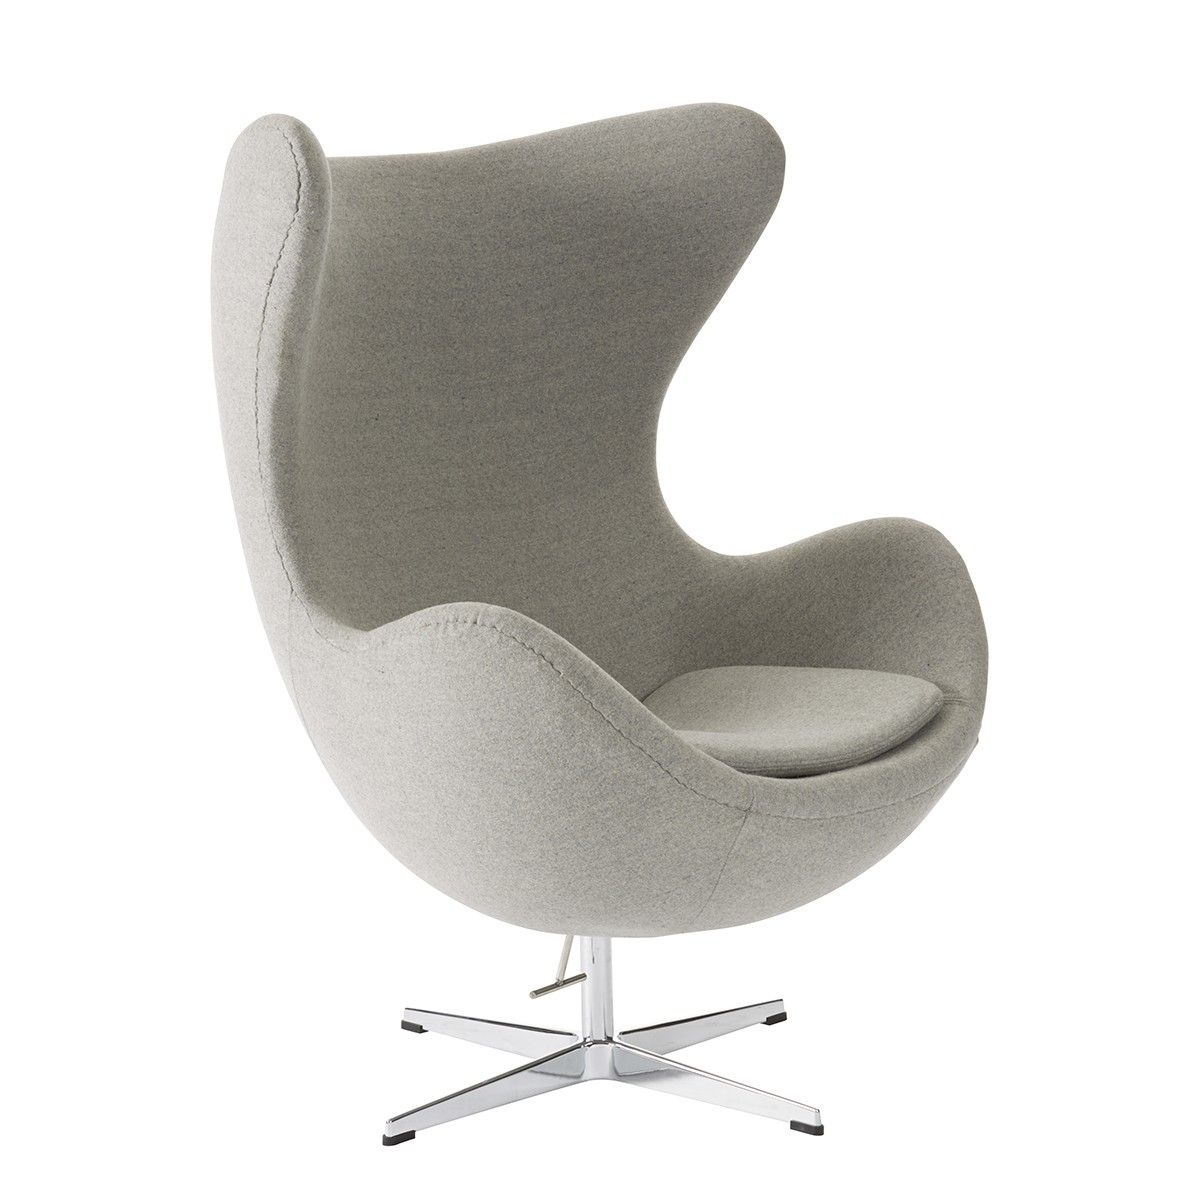 Replica Arne Jacobsen Egg Chair   Wool Blend   Chairs Nick Scali Online  $649 + Delivery